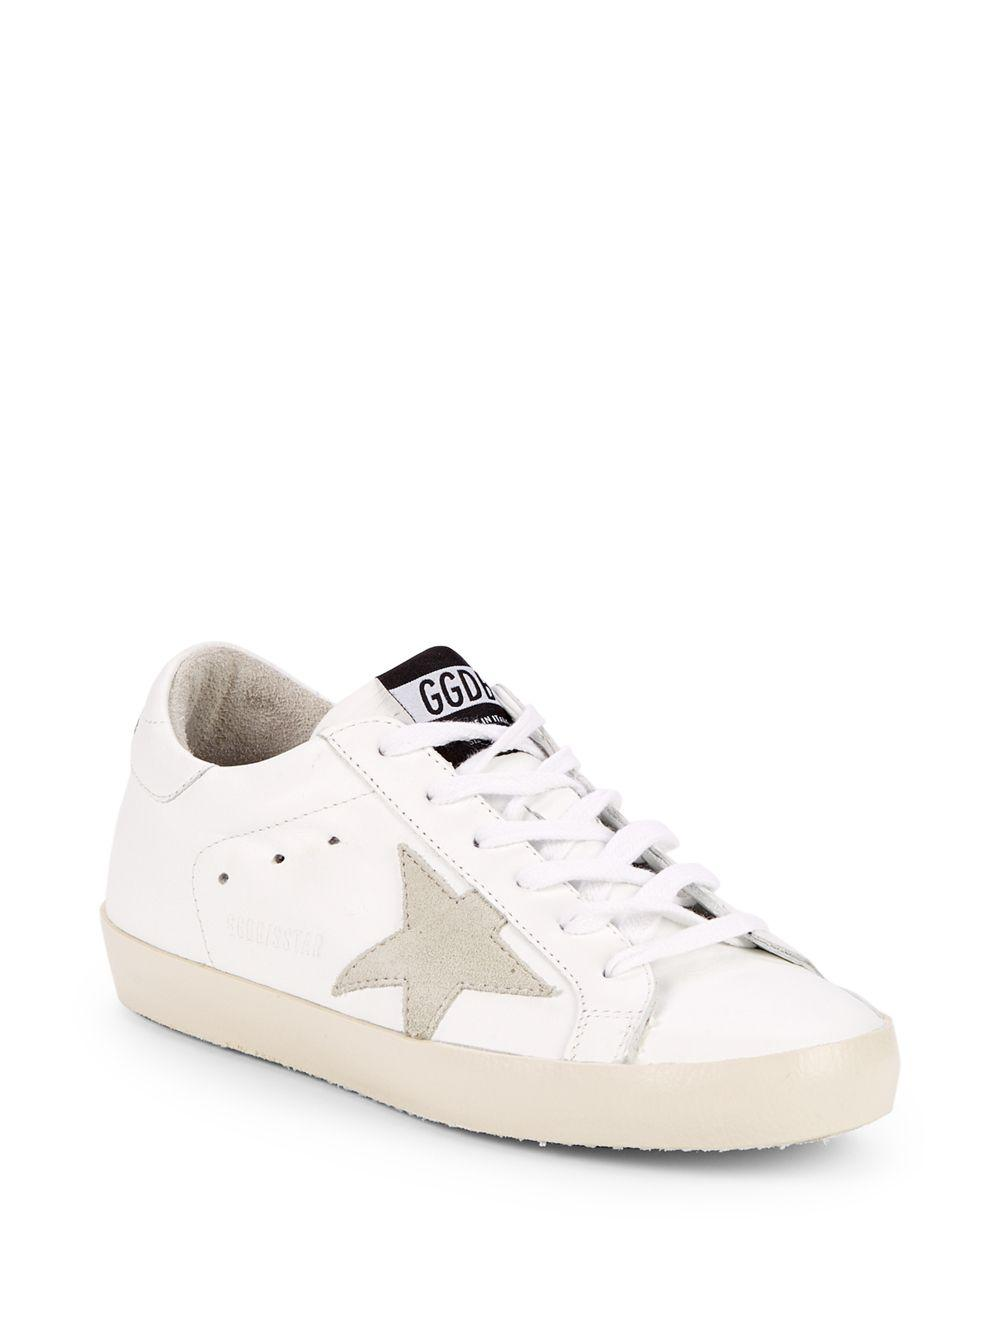 587d4c4f804 Lyst - Golden Goose Deluxe Brand Superstar Leather Low-top Sneakers in White